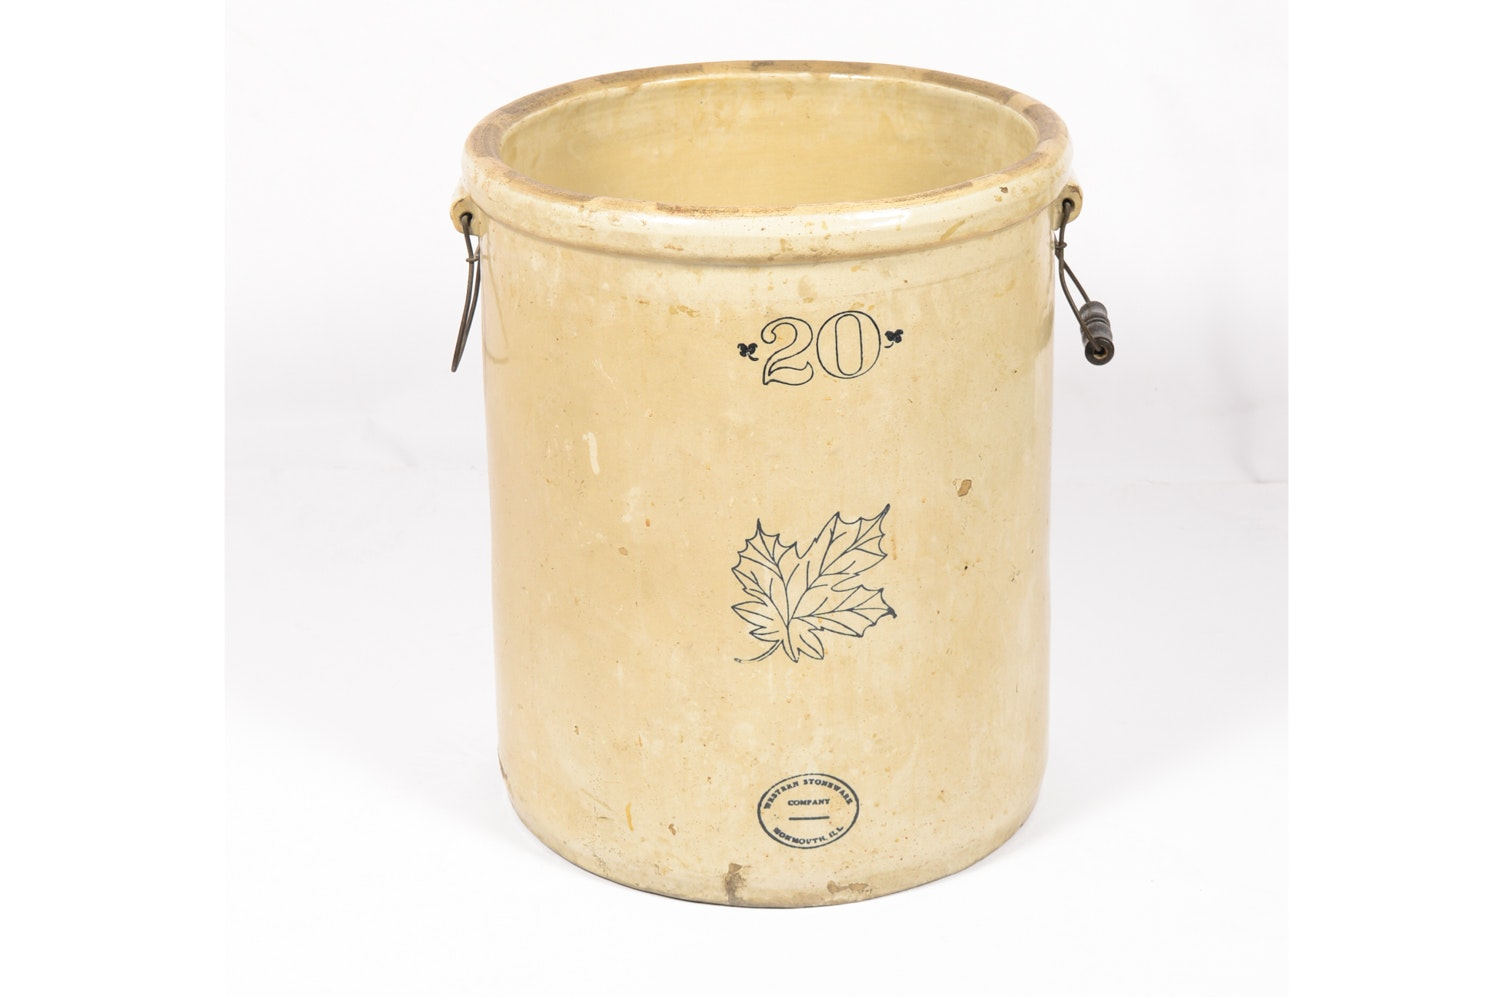 Antique Western Stoneware Company Twenty Gallon Crock